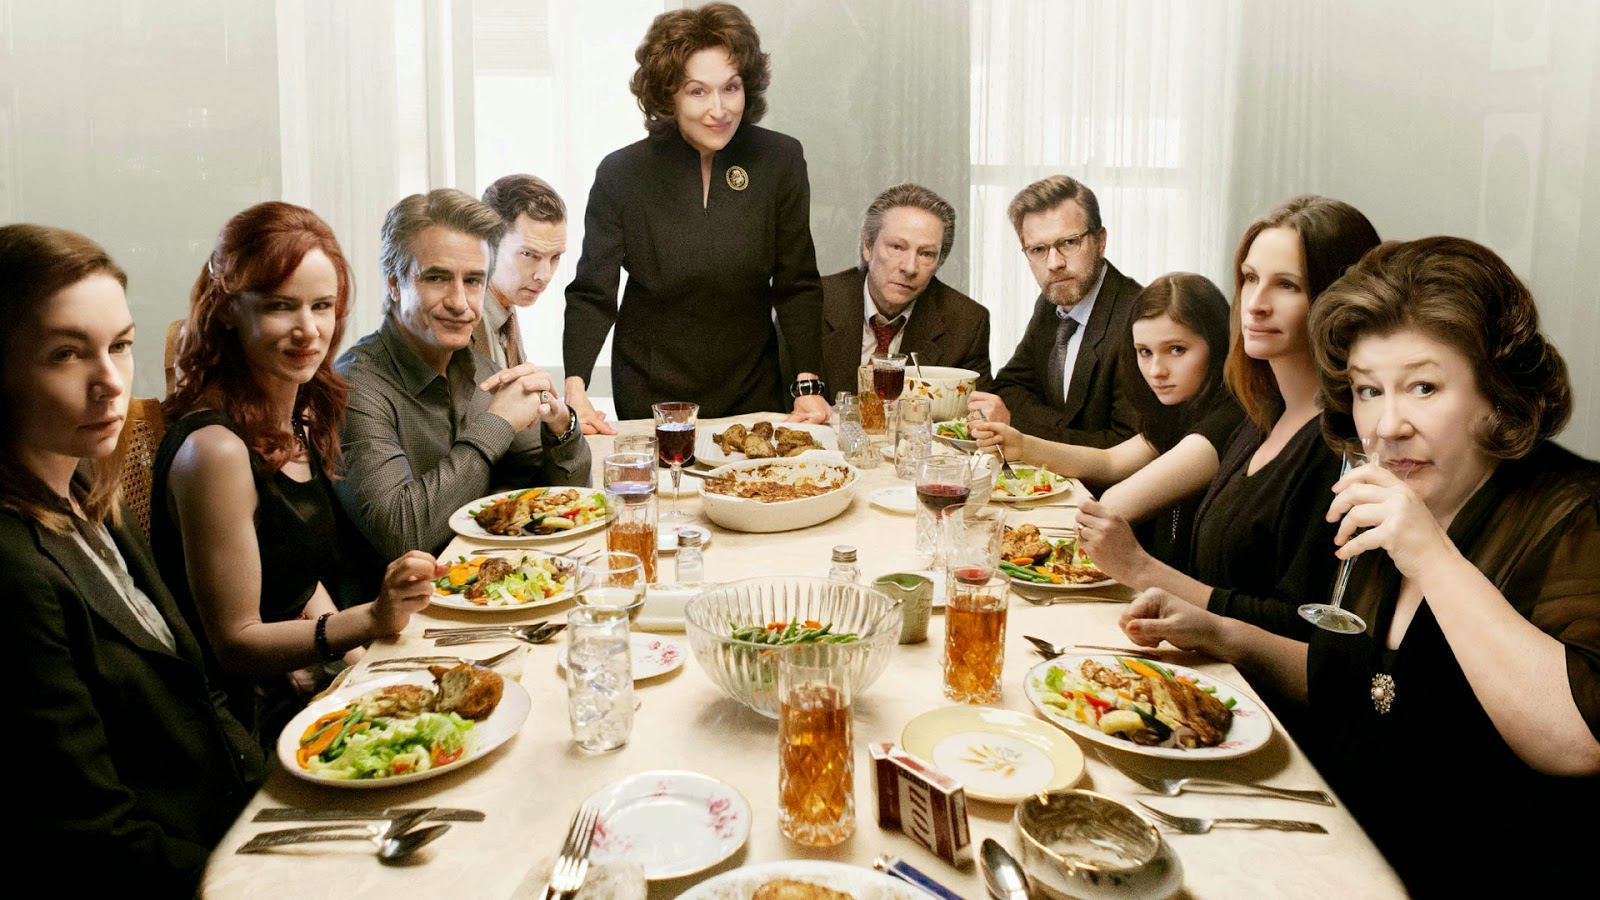 August: Osage County cast picture